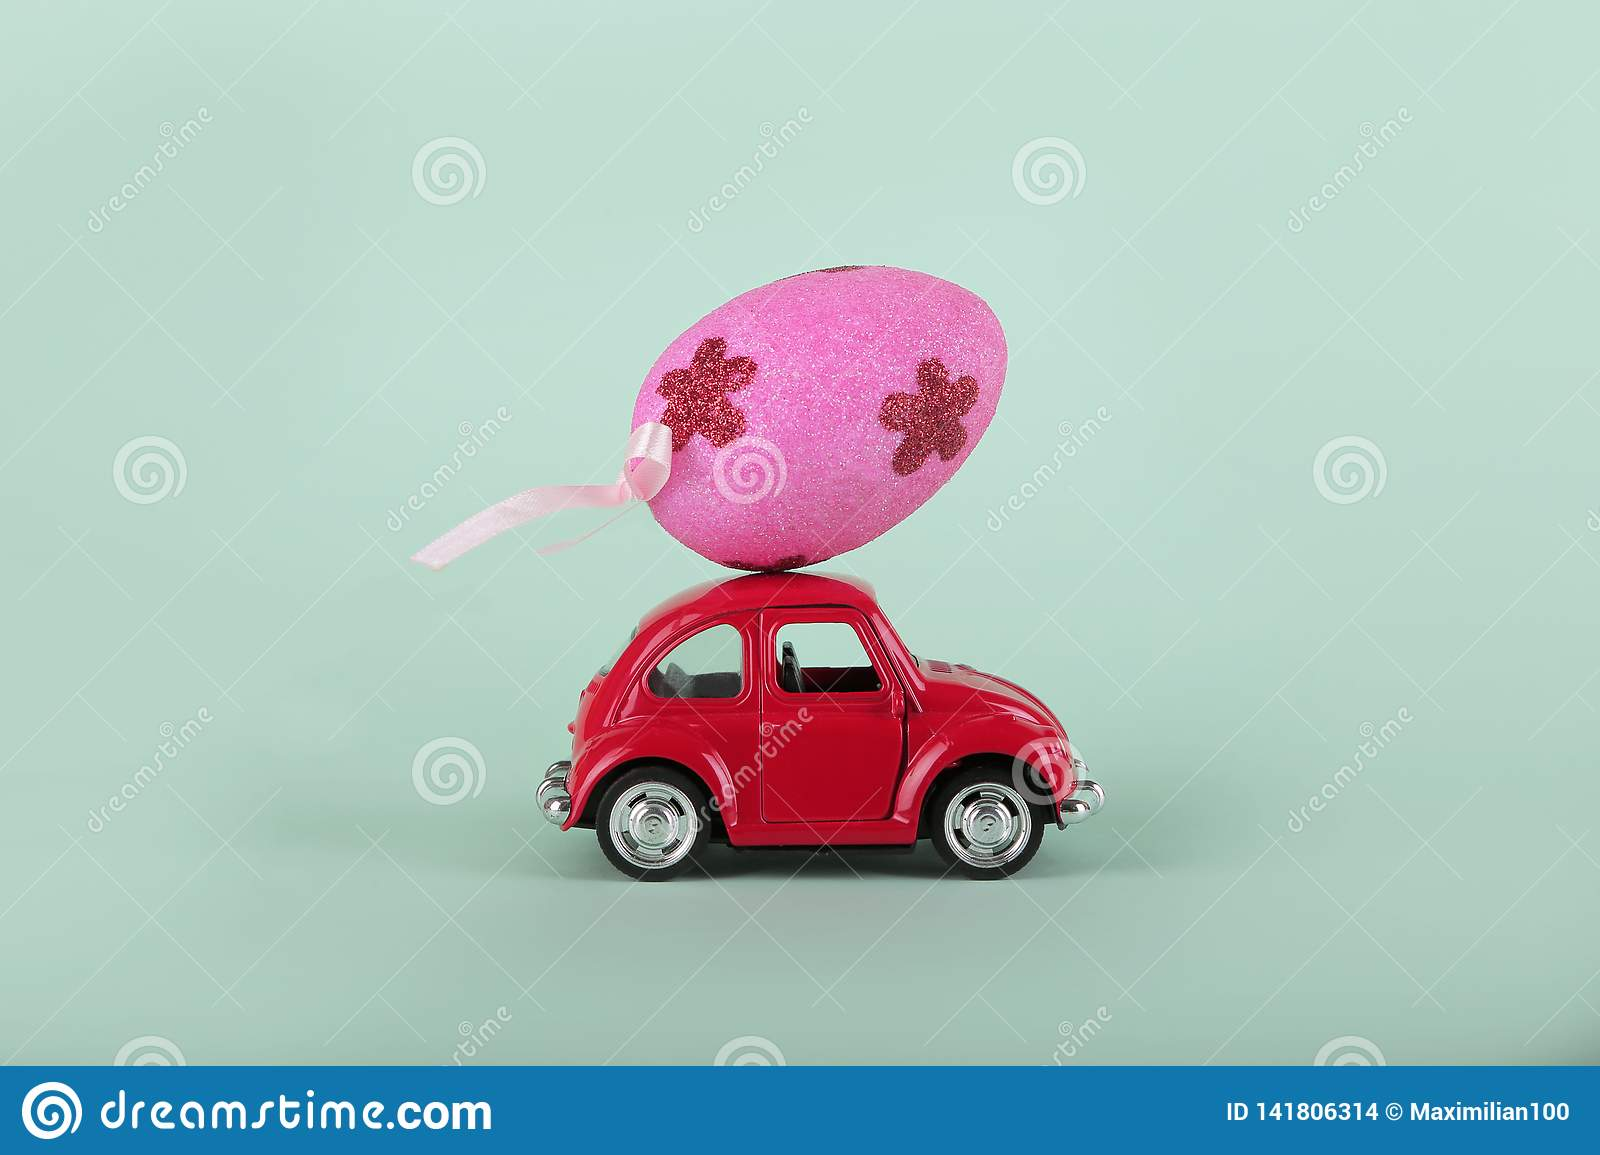 Easter holiday concept with egg on toy red car on turquoise background.